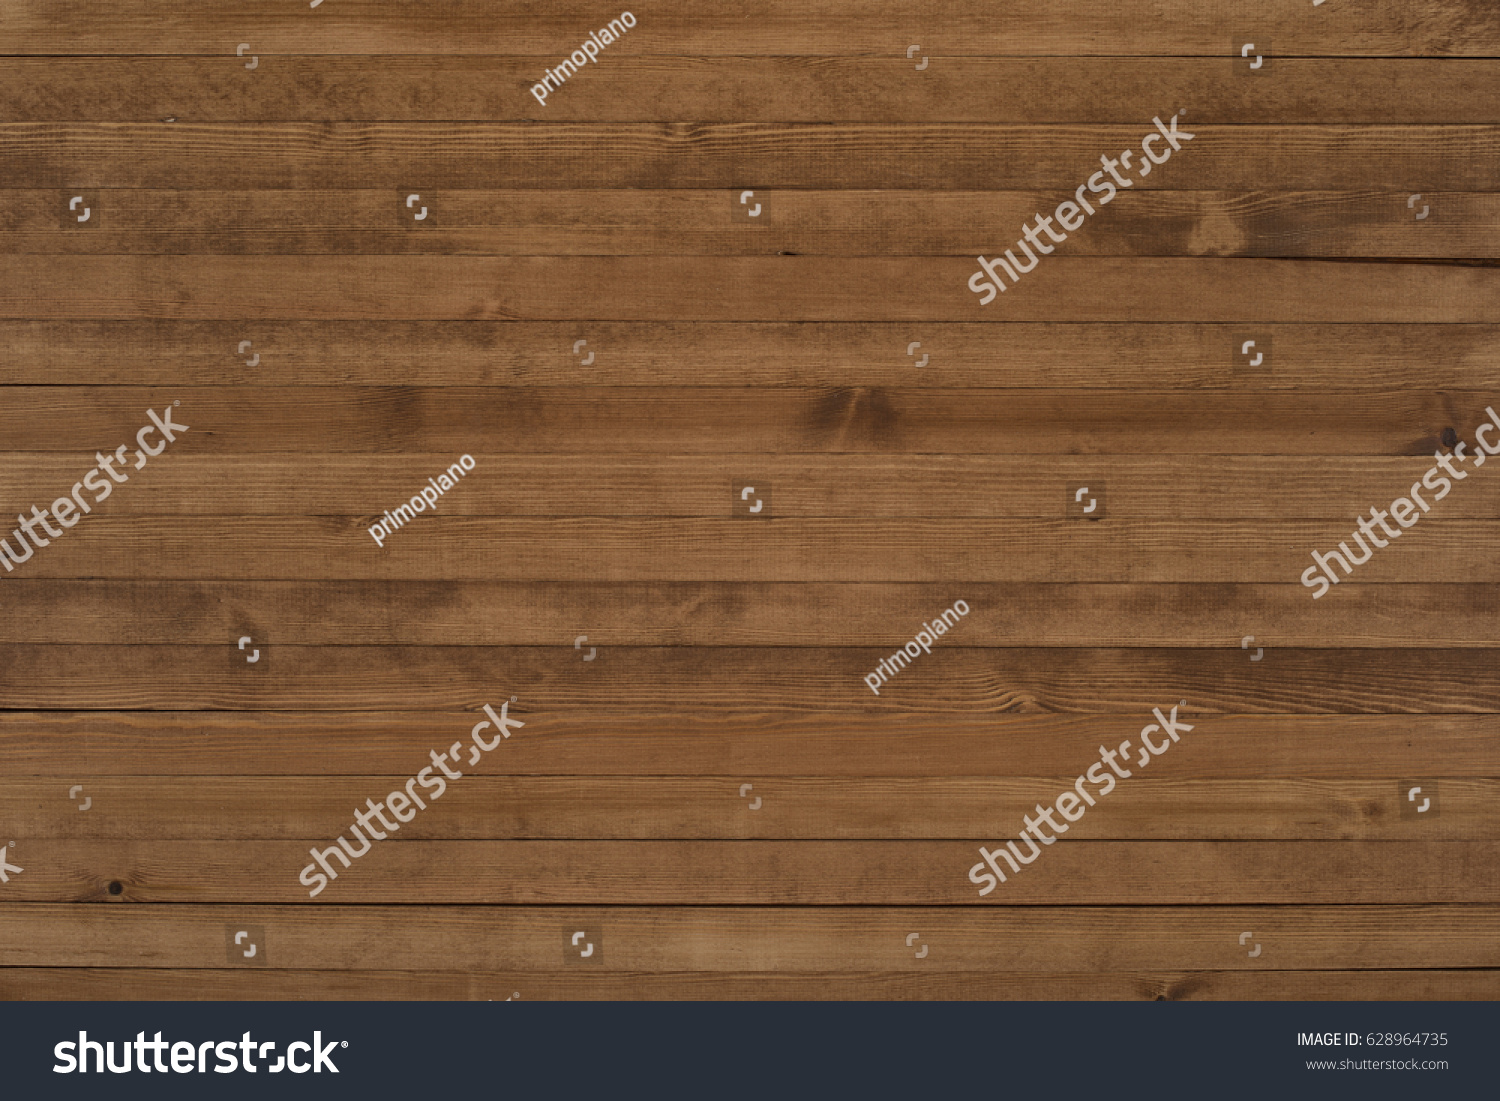 Wooden table background pattern - Dark Wood Texture Background Surface With Old Natural Pattern Grunge Surface Rustic Wooden Table Top